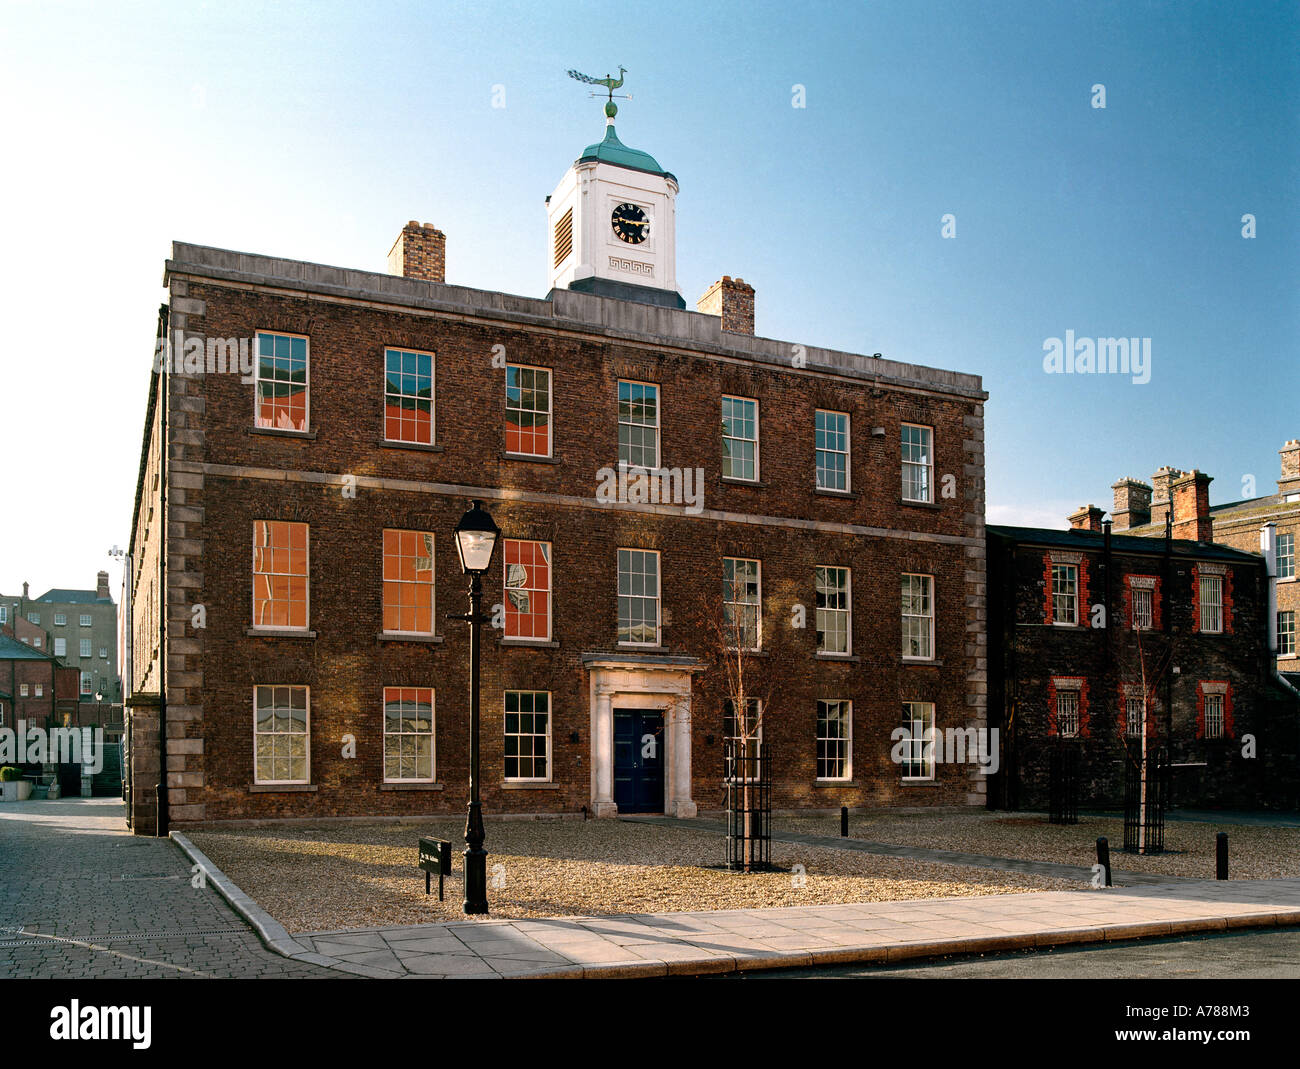 The old carriage house in Dublin Castle, now part of the Chester Beatty Library, Ireland - Stock Image